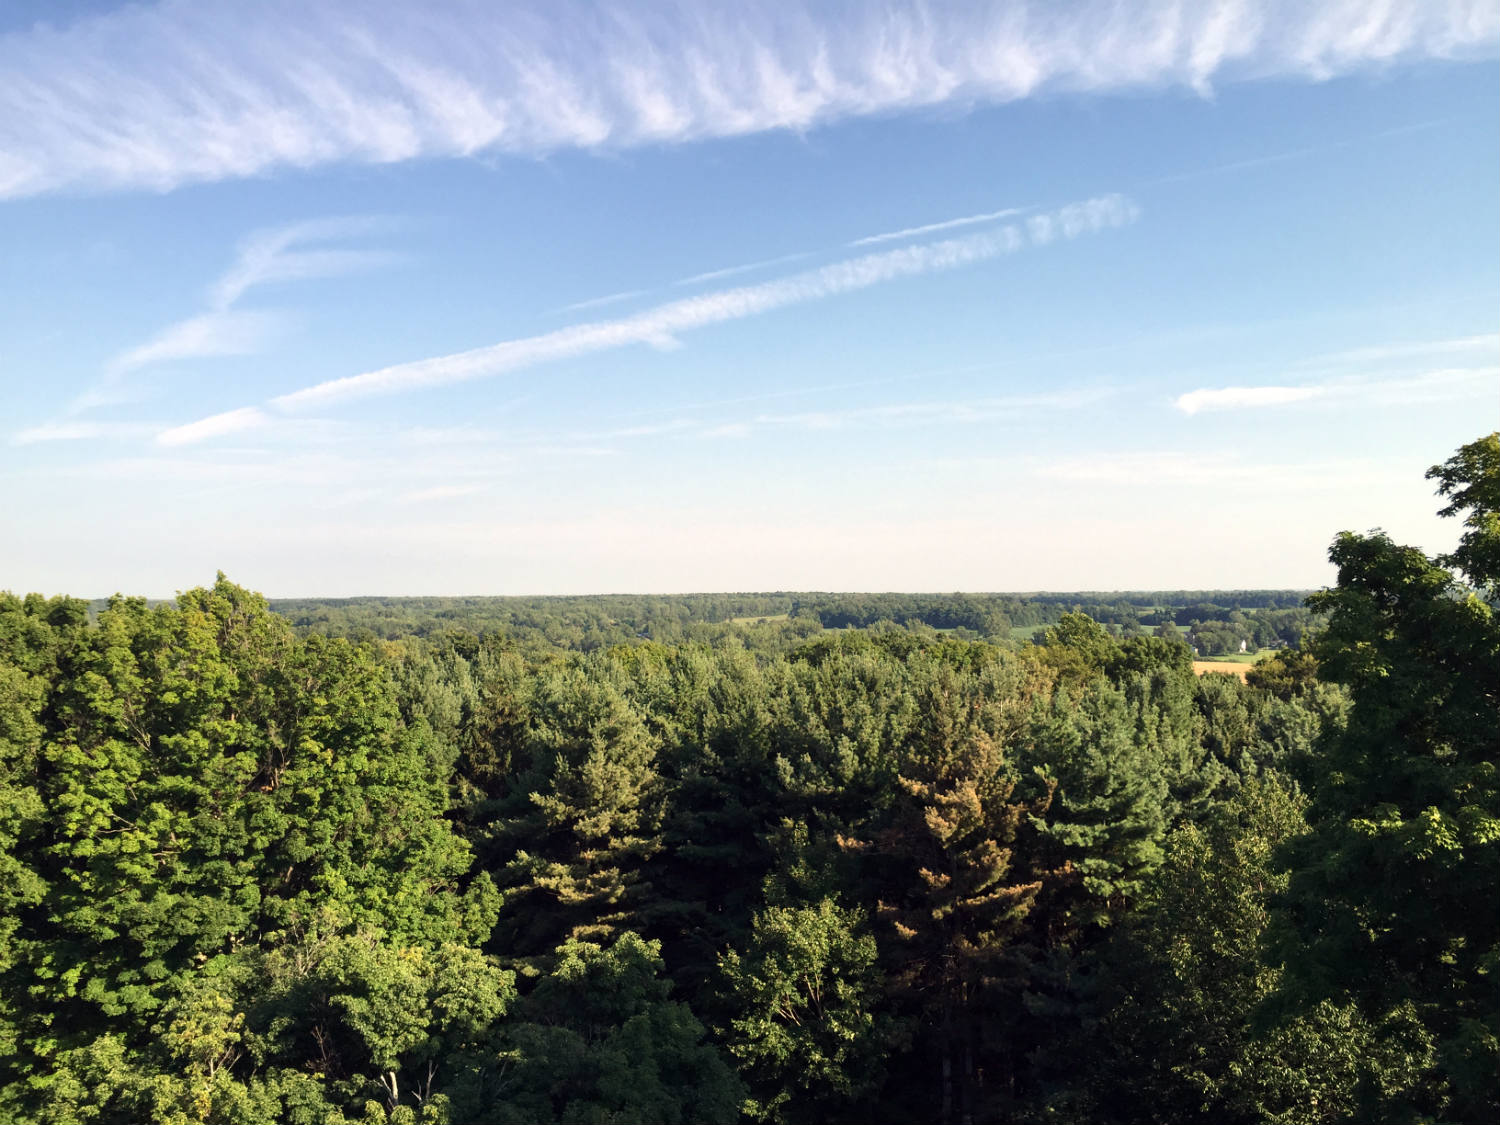 View of Orleans County from atop Mt. Albion Cemetery Tower